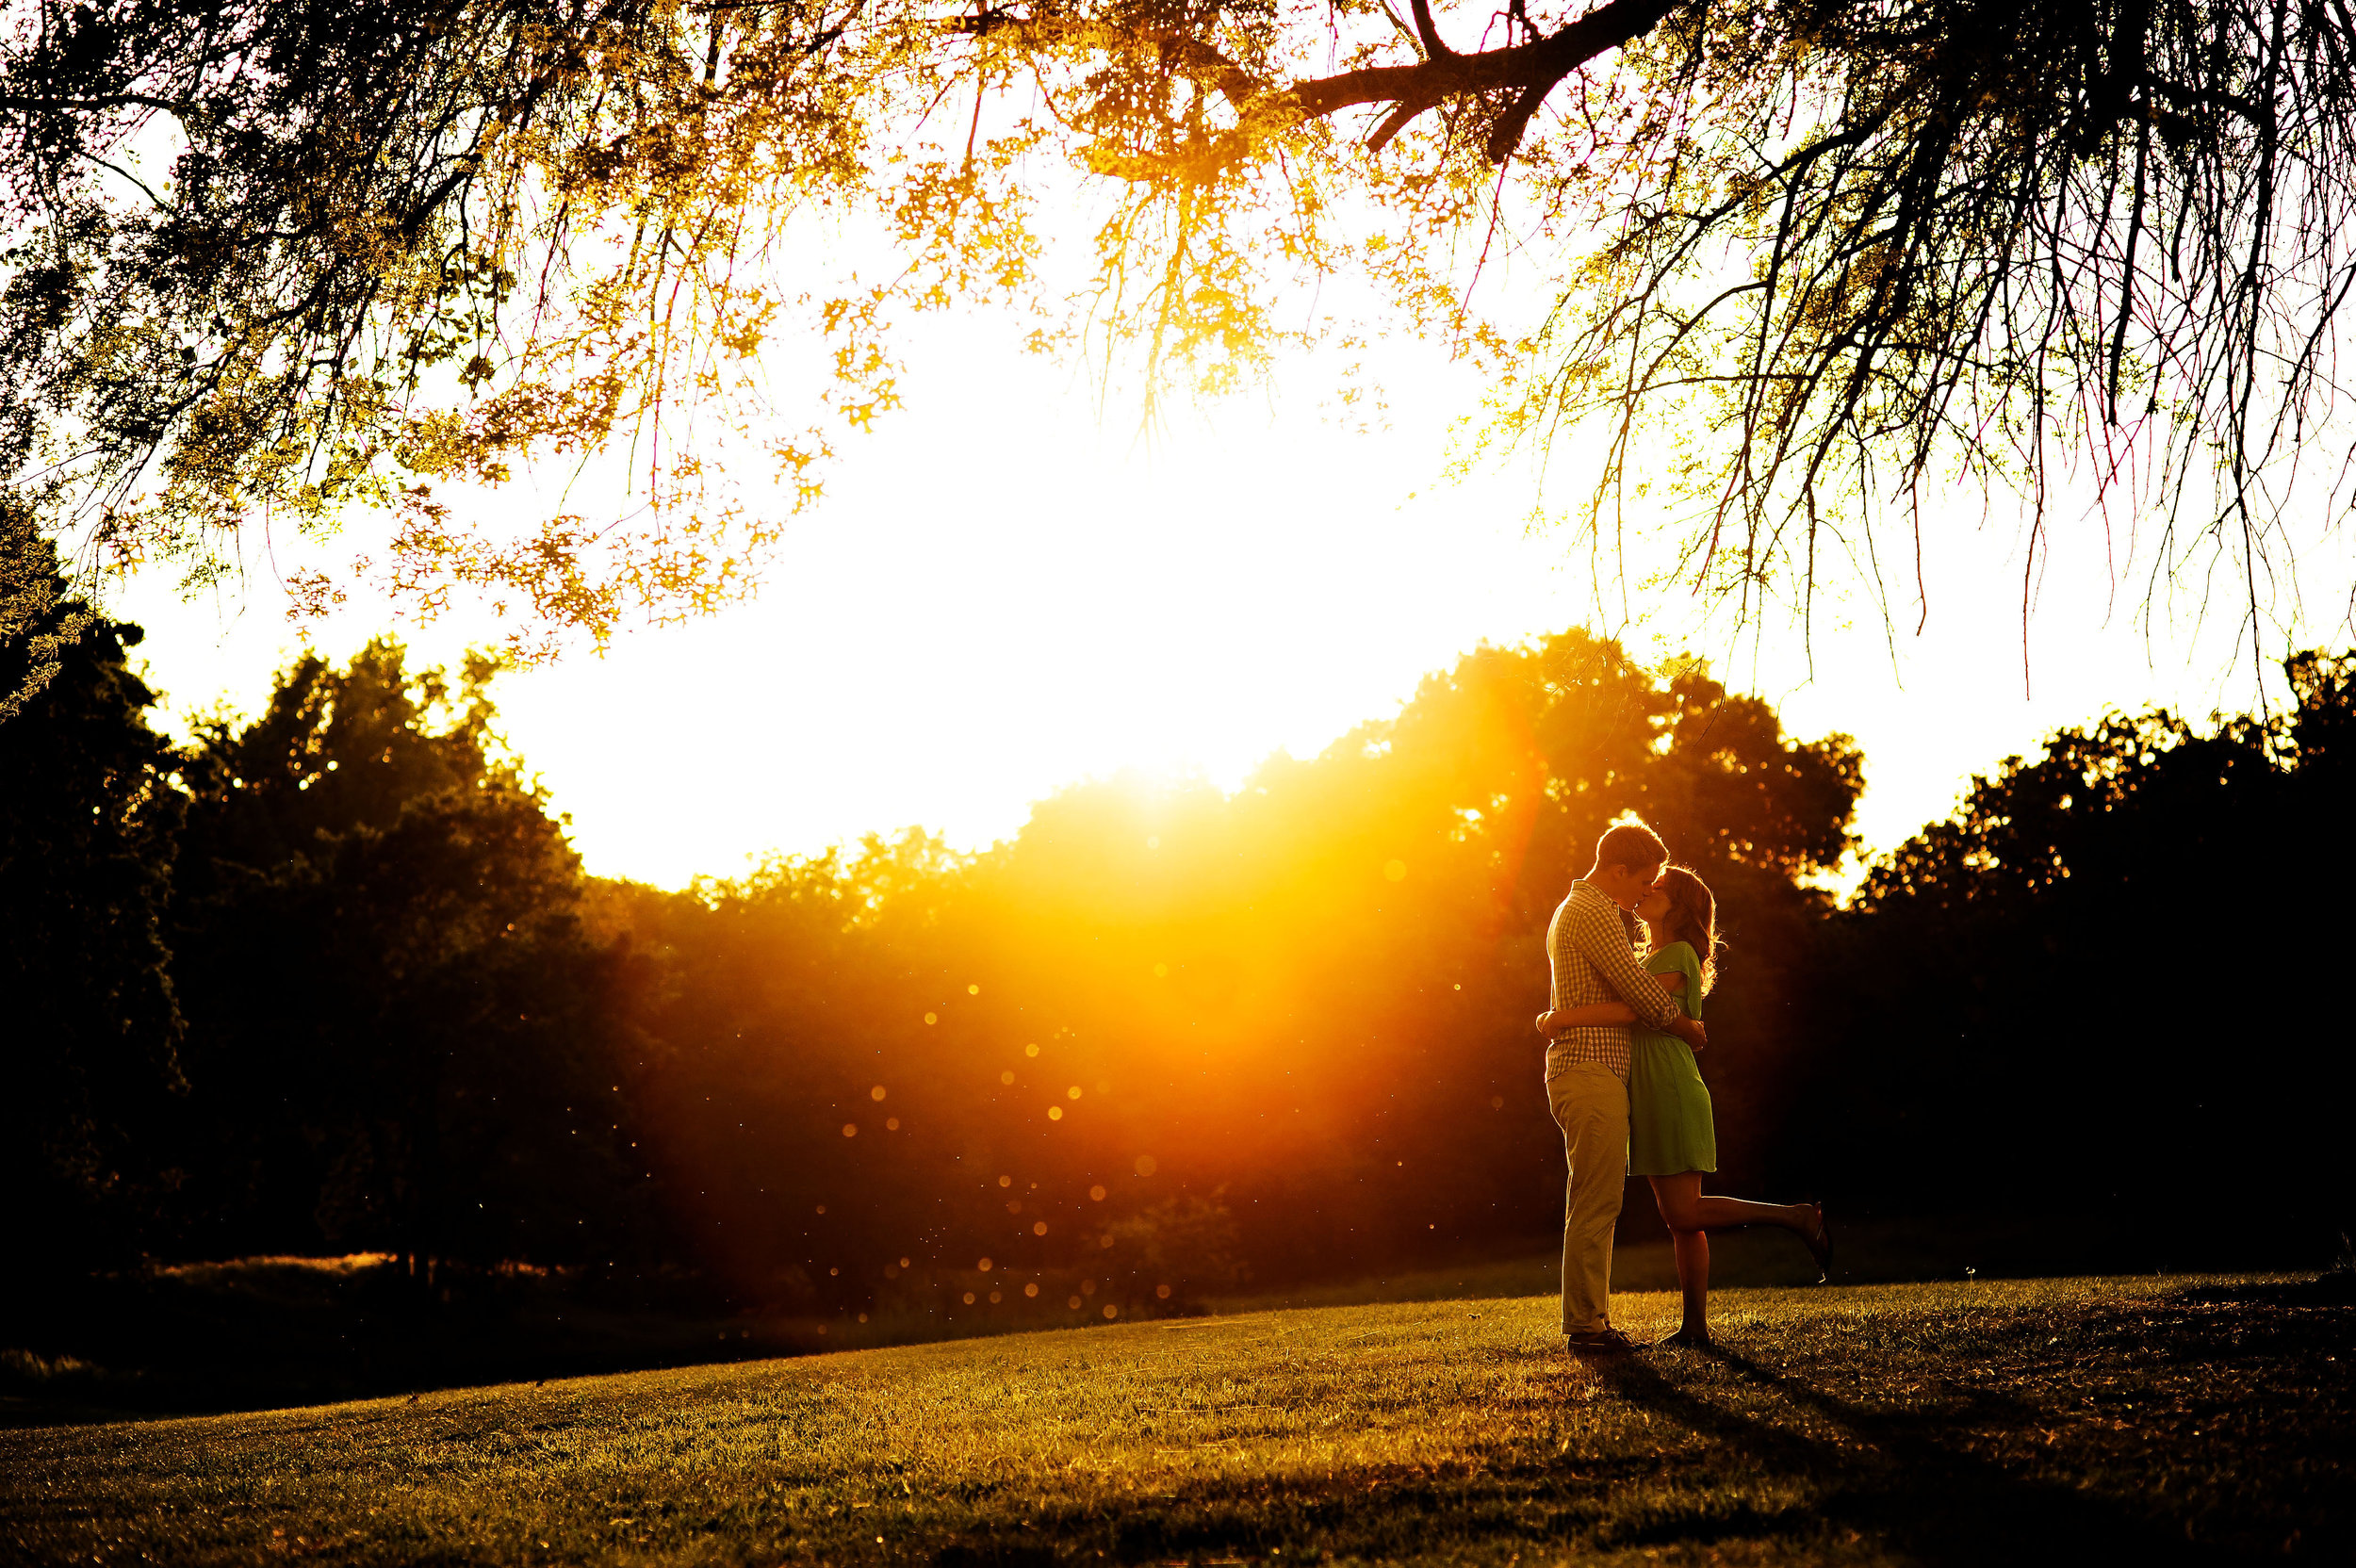 jennifer-dave-011-sacramento-engagement-wedding-photographer-katherine-nicole-photography.JPG